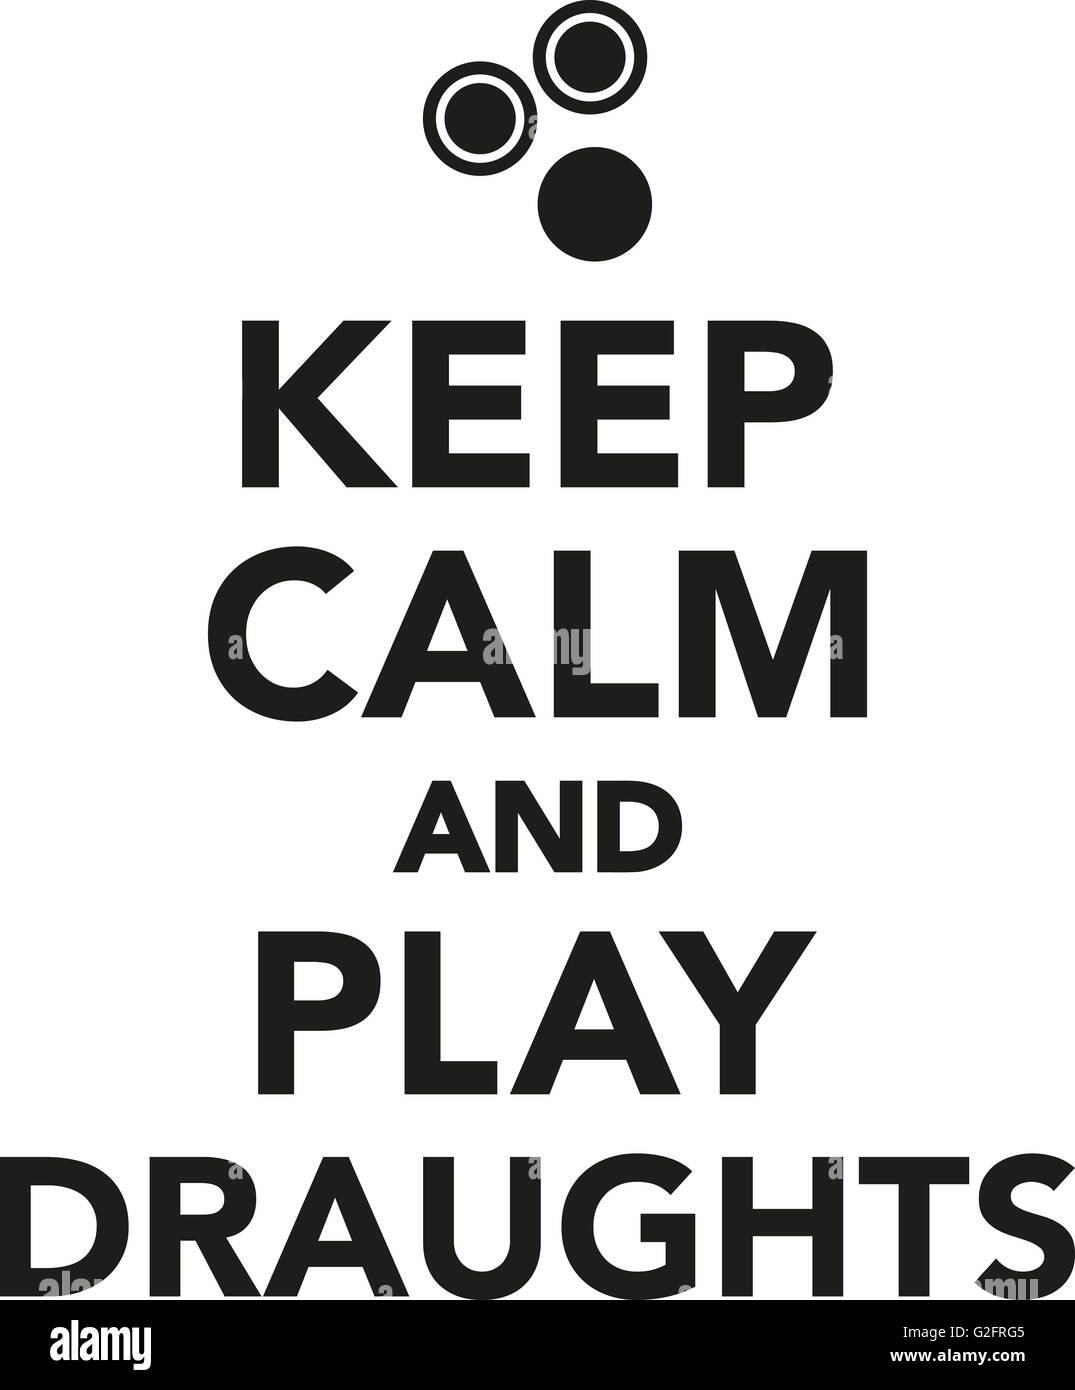 Keep calm and play draughts - Stock Image